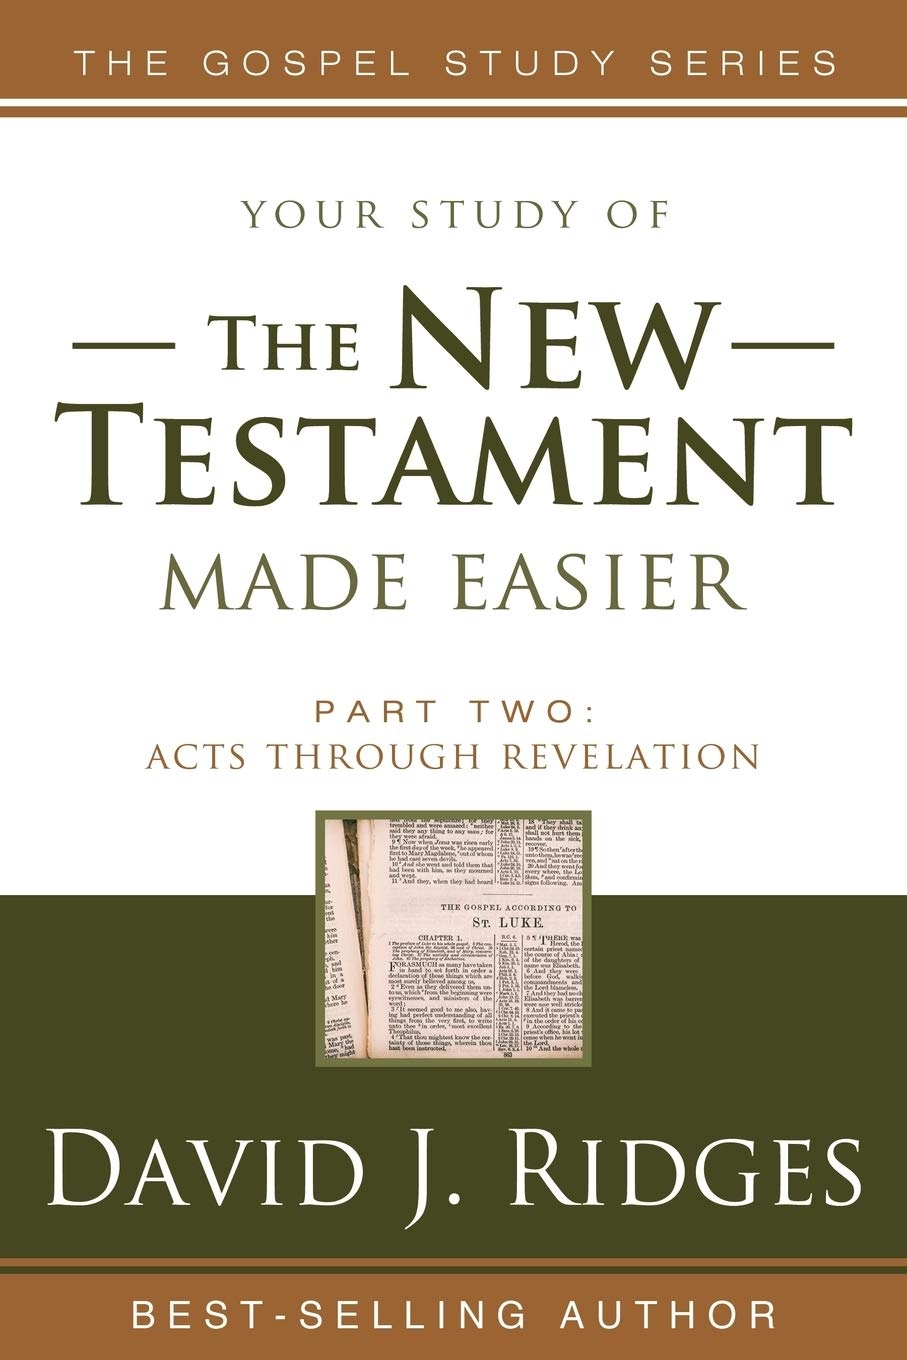 THE NEW TESTAMENT MADE EASIER - PART 2, Ridges, David J.